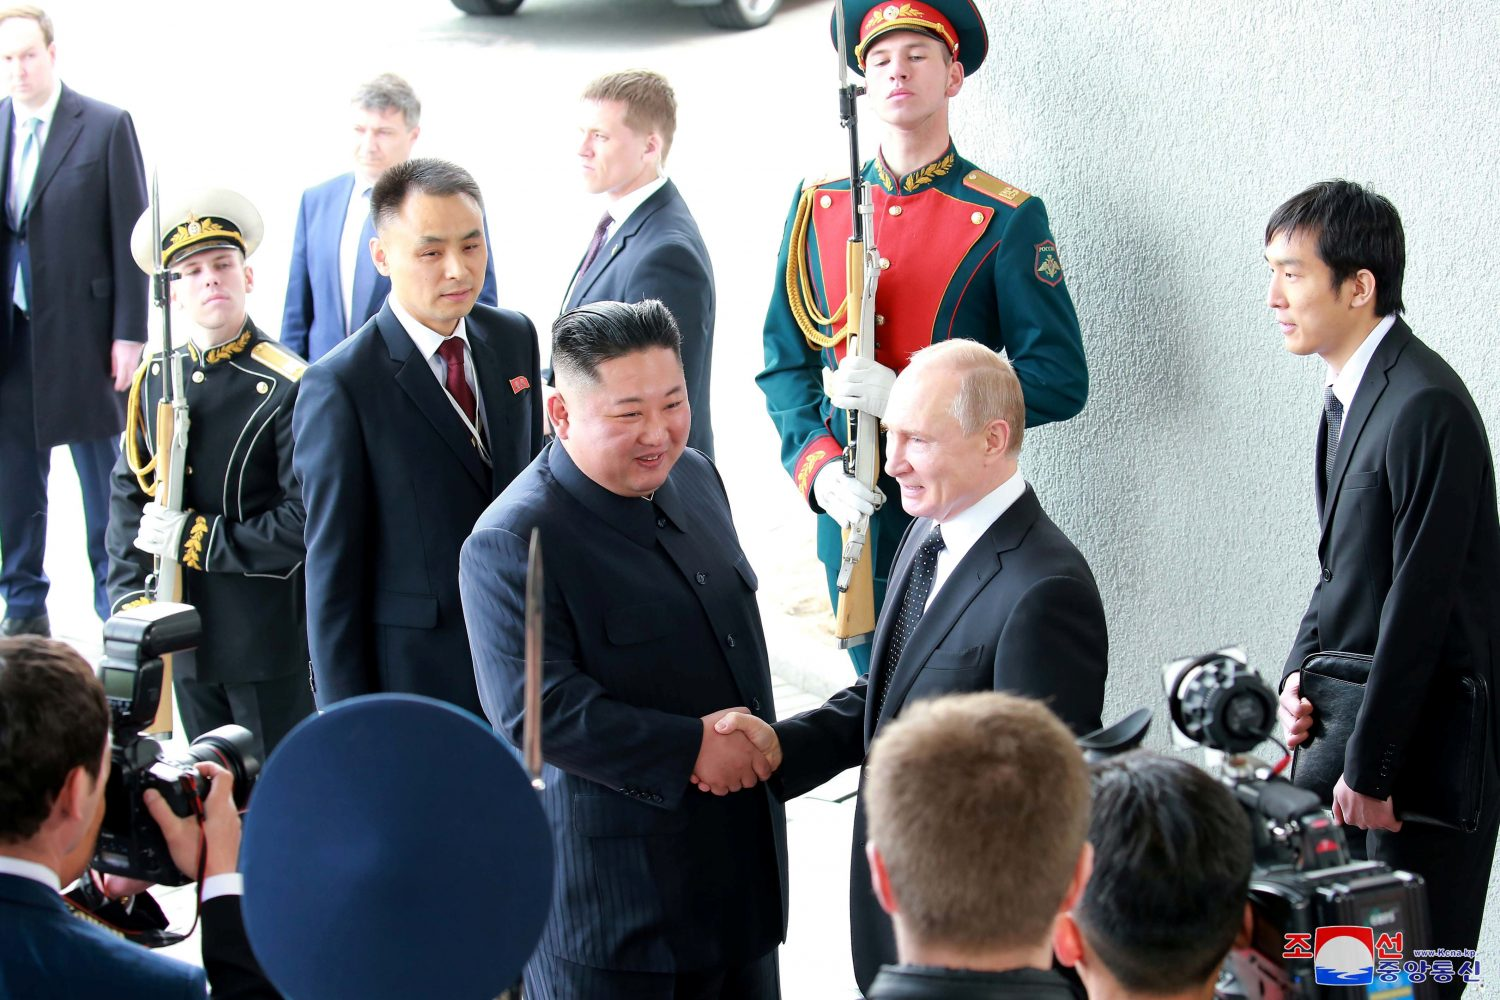 North Korean leader Kim Jong Un shakes hands with Russian President Vladimir Putin in Vladivostok, Russia in this undated photo released on April 25, 2019 by North Korea's Central News Agency (KCNA). KCNA via REUTERS